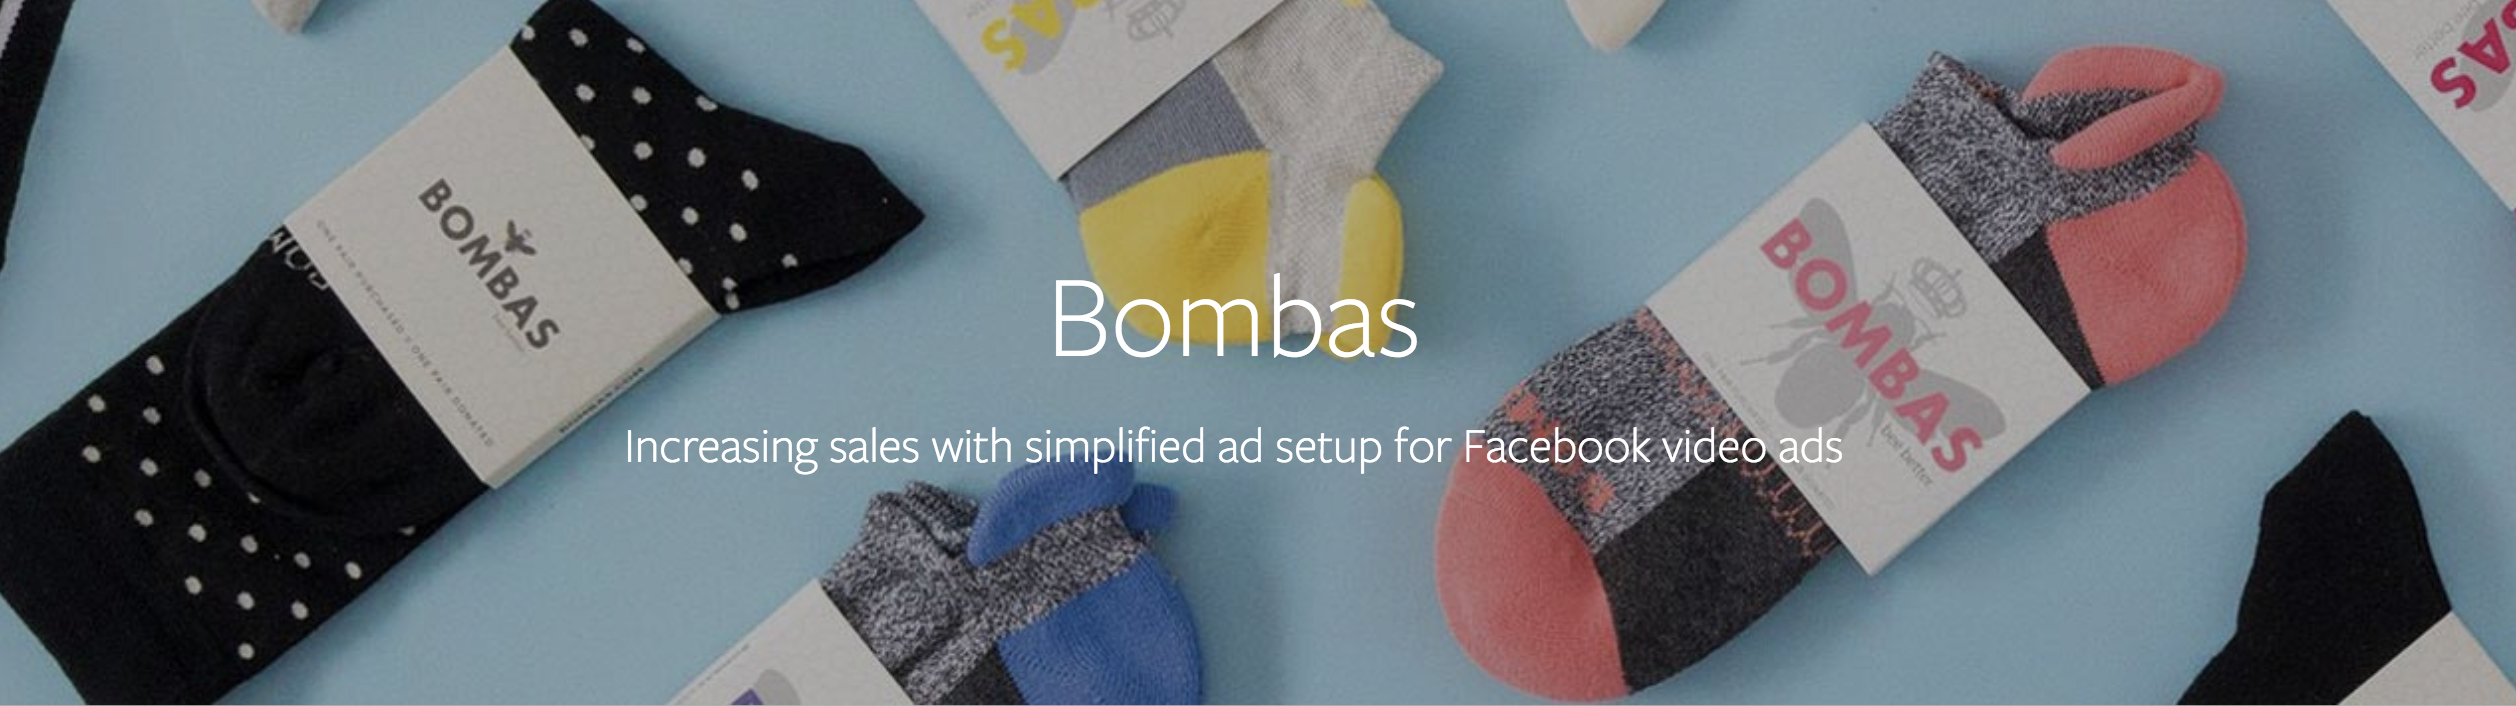 Running Facebook Ads for Shopify? WAIT! Read this first